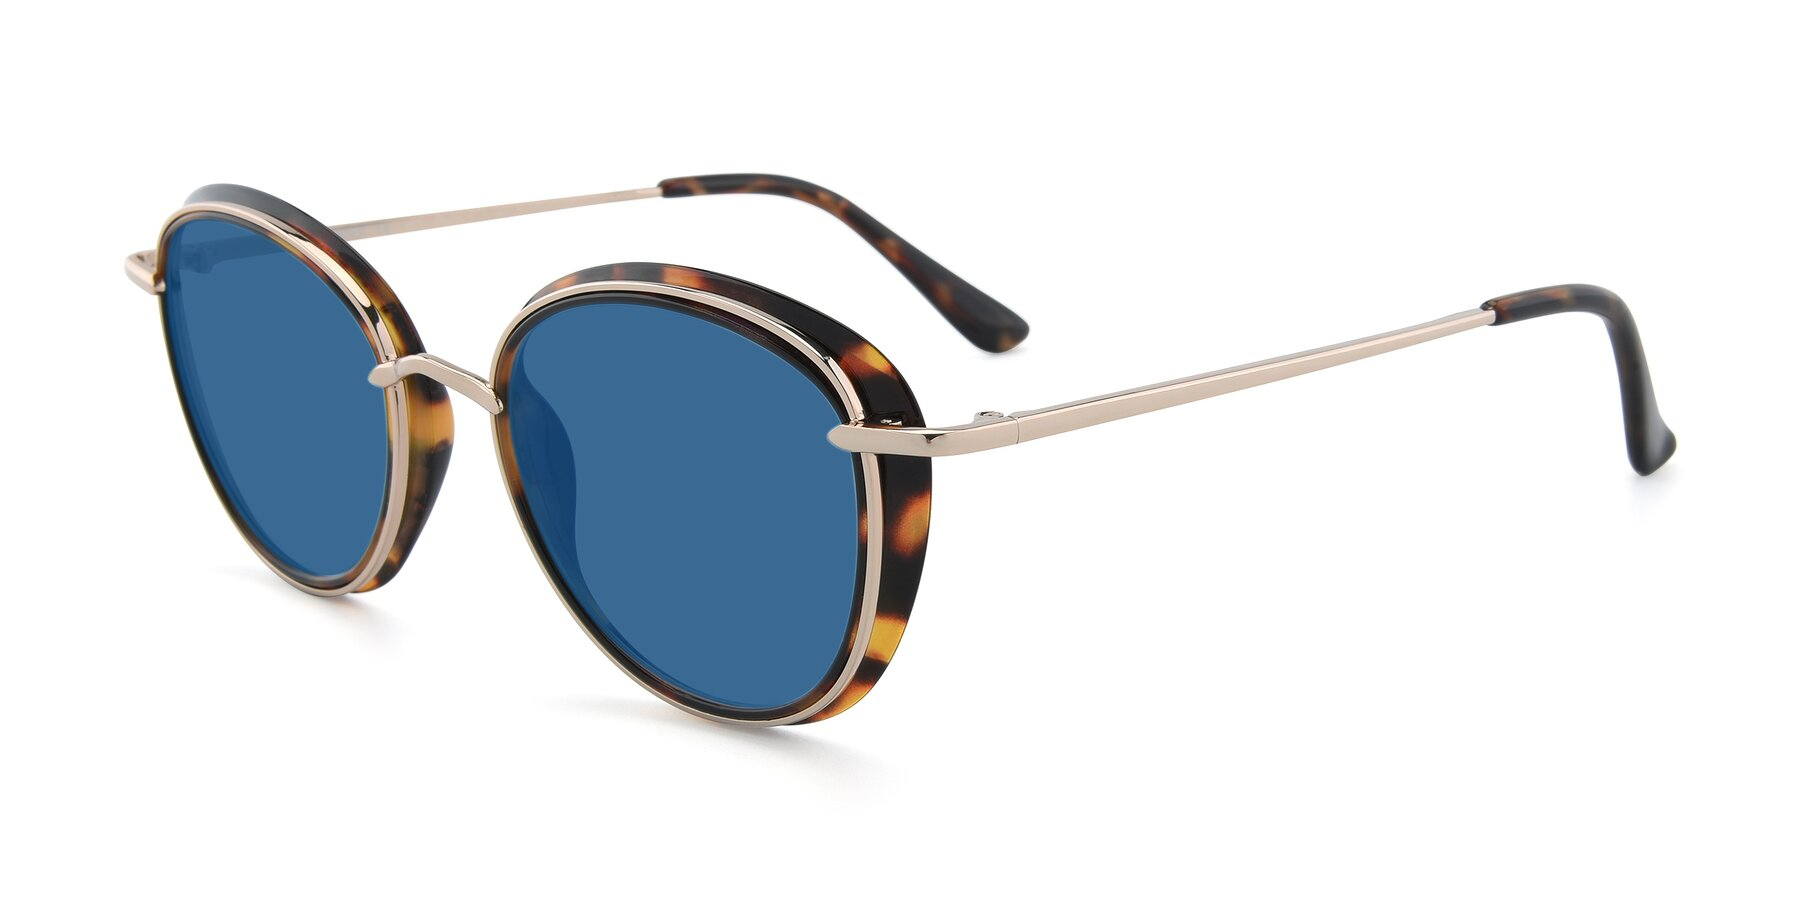 Angle of Cosmopolitan in Tortoise-Silver with Blue Tinted Lenses